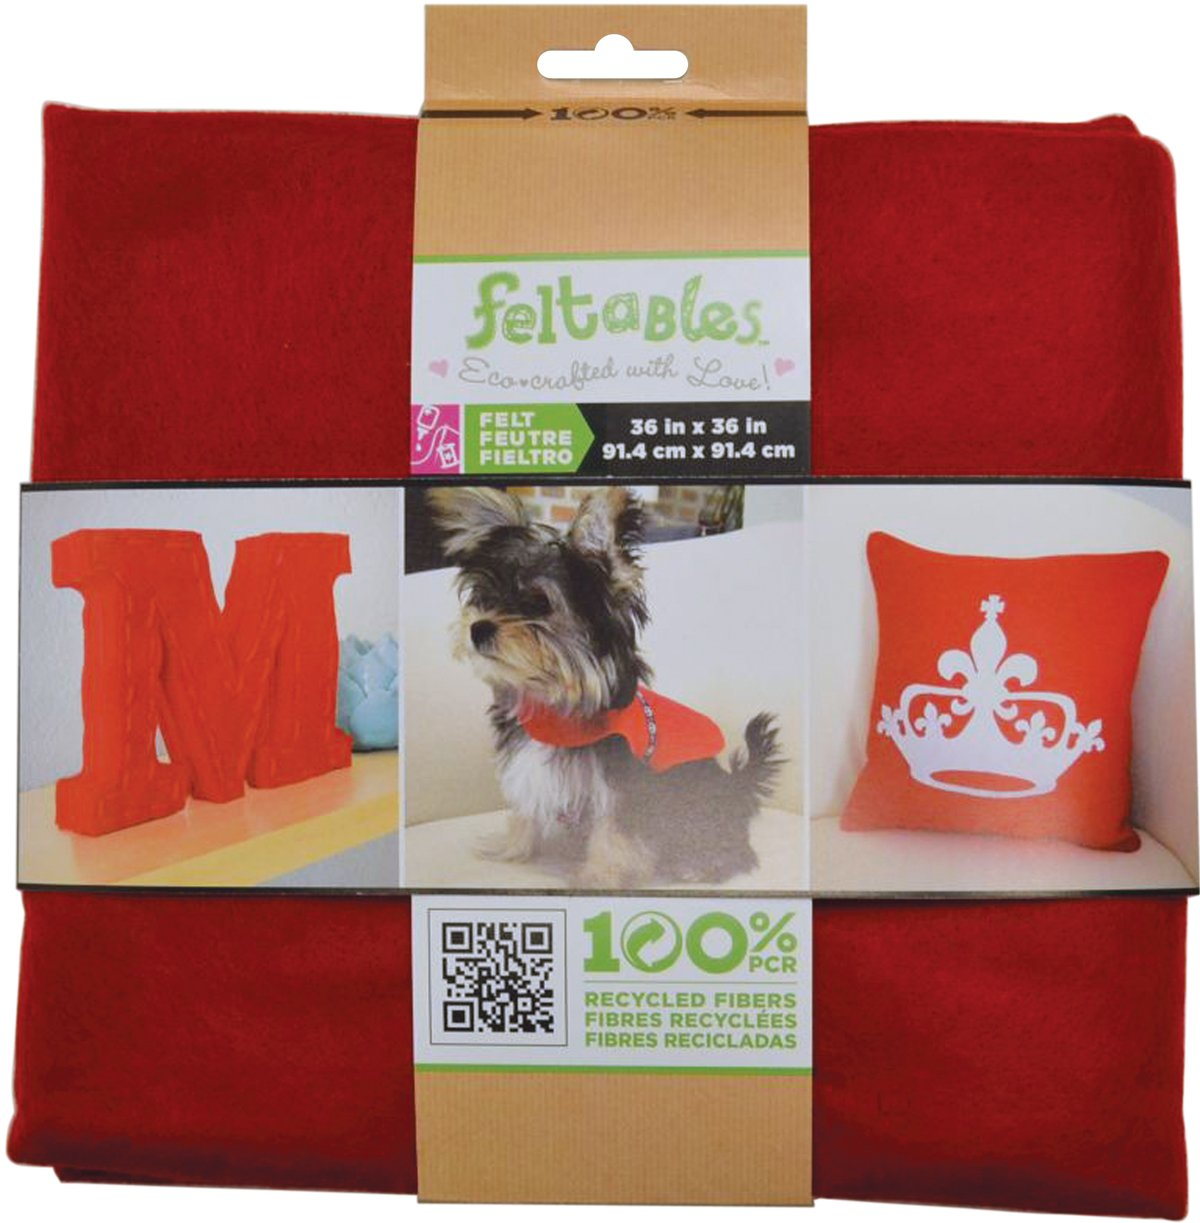 The New Image Group New Image Group Feltables Craft Pack Felt, 36 x 36-Inch, Red FELTCP-50006